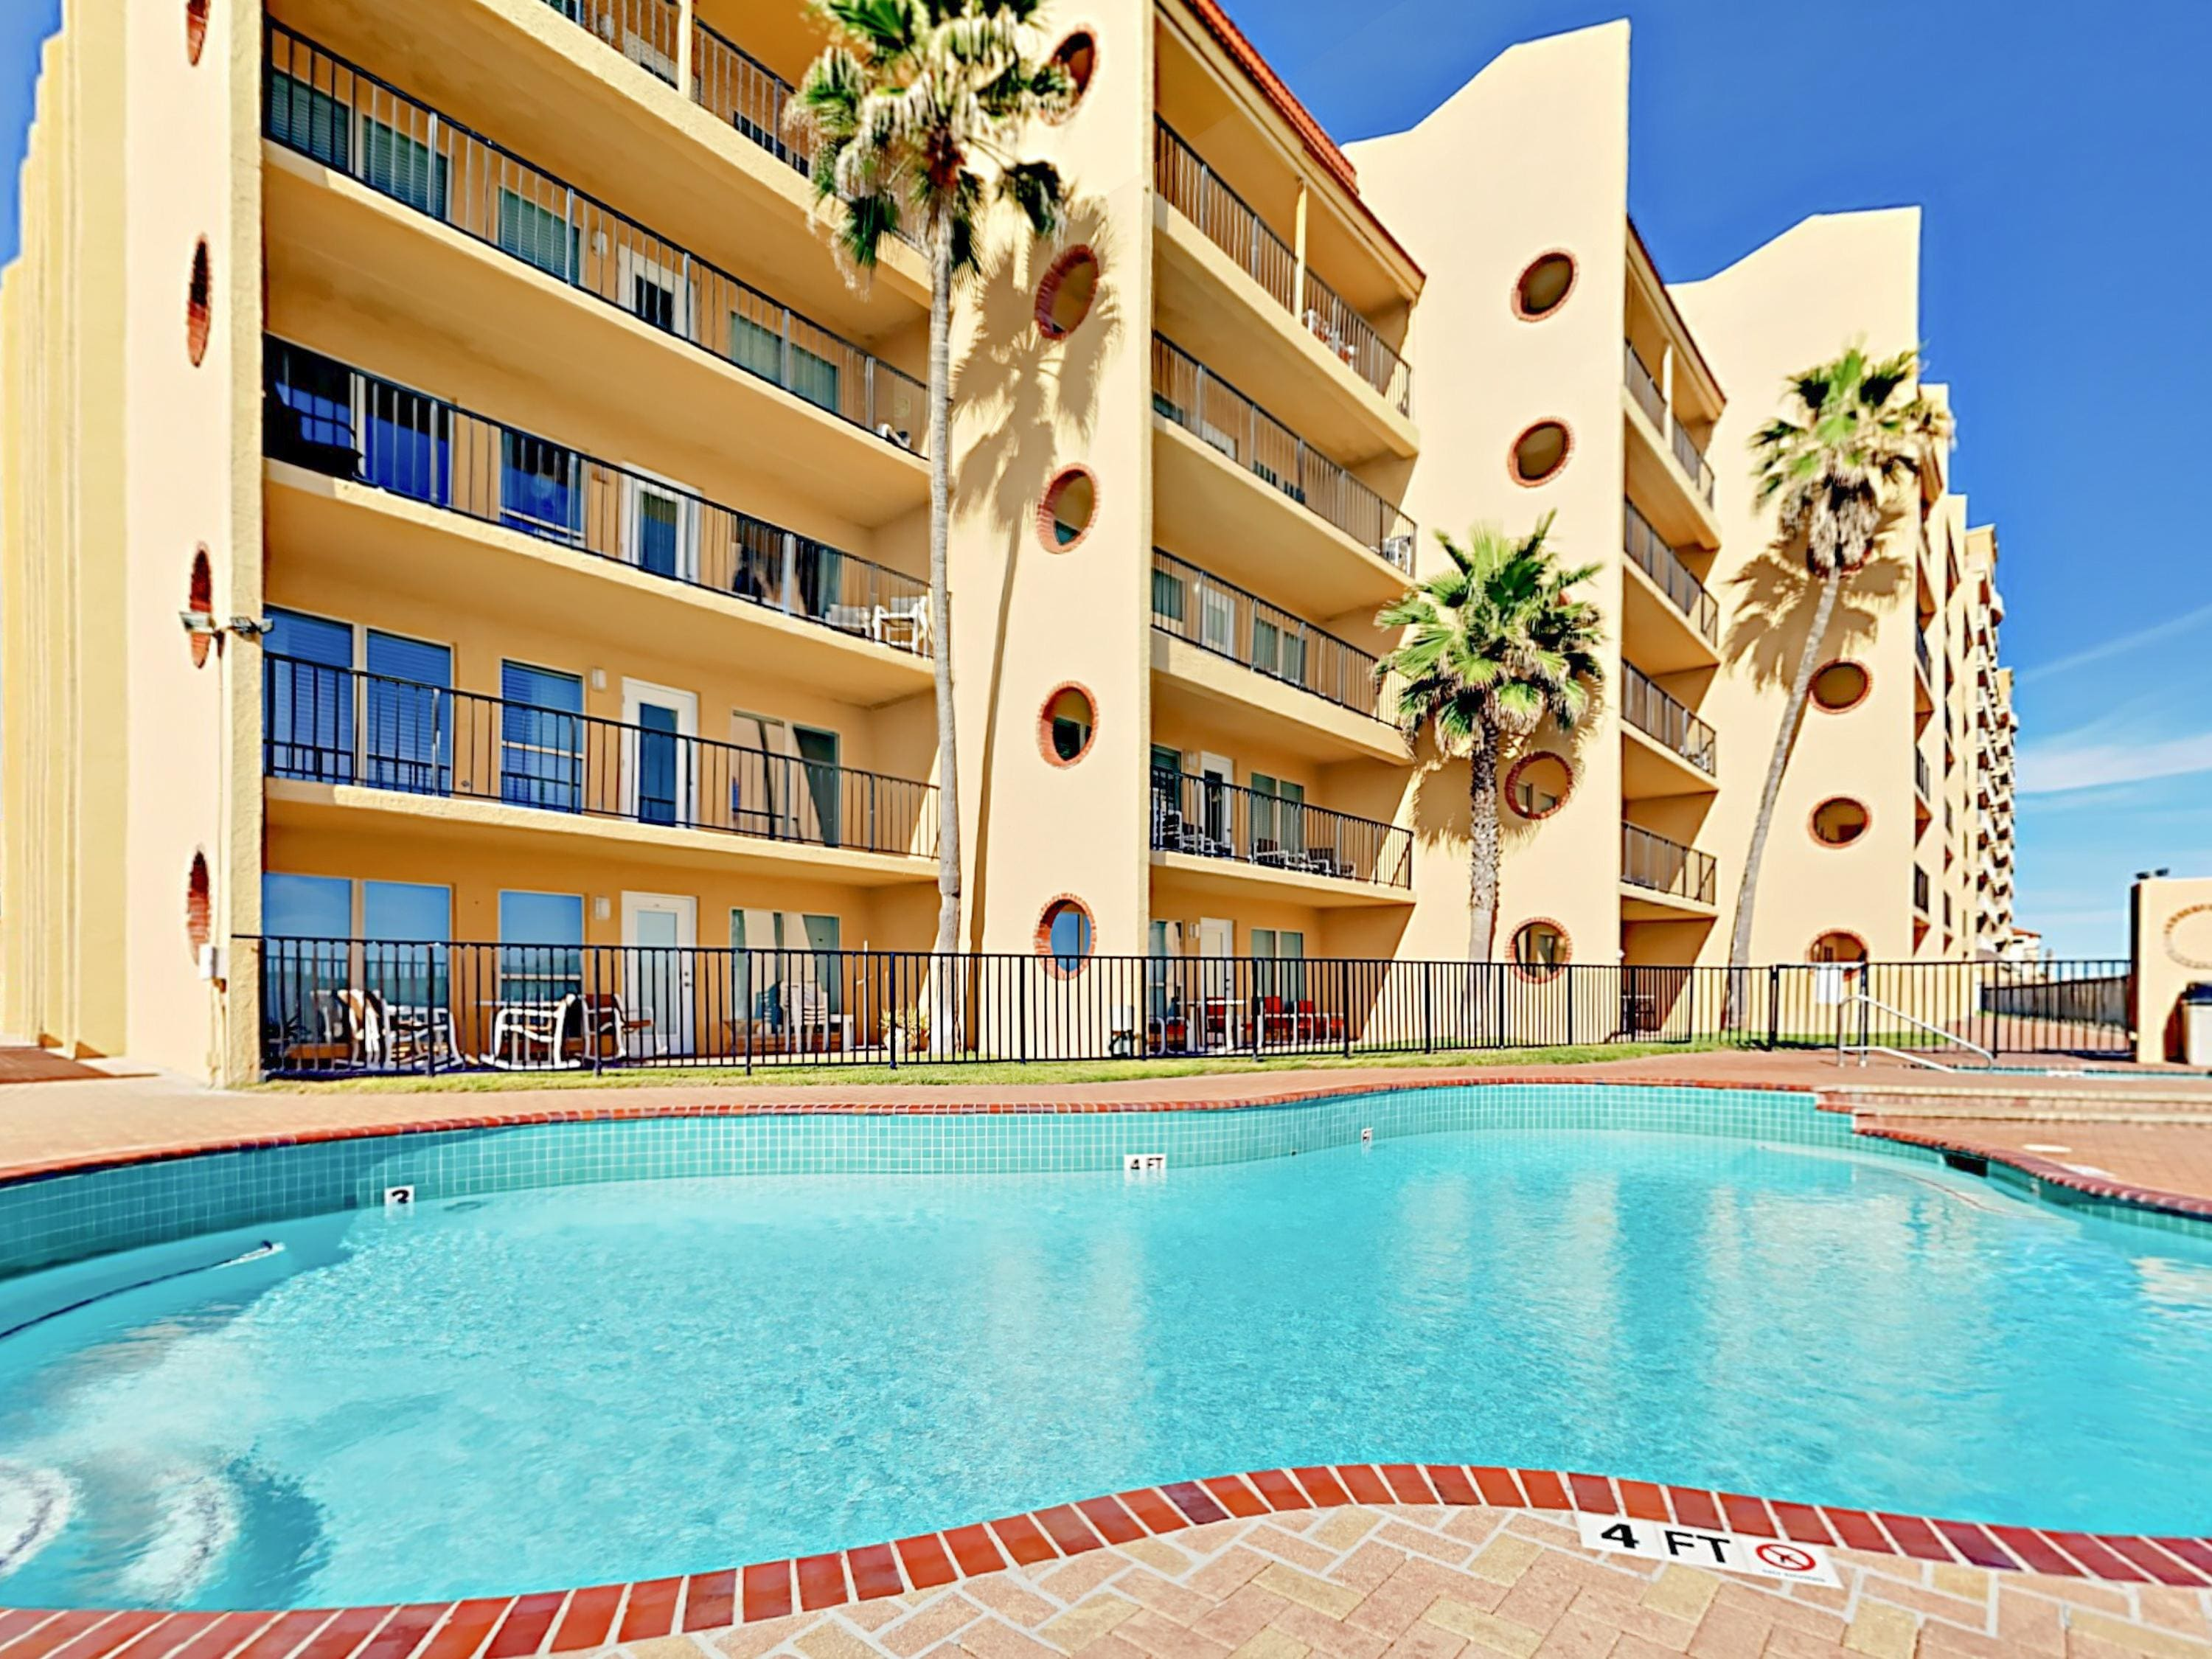 Take a dip in the gorgeous pool at your condominium complex.